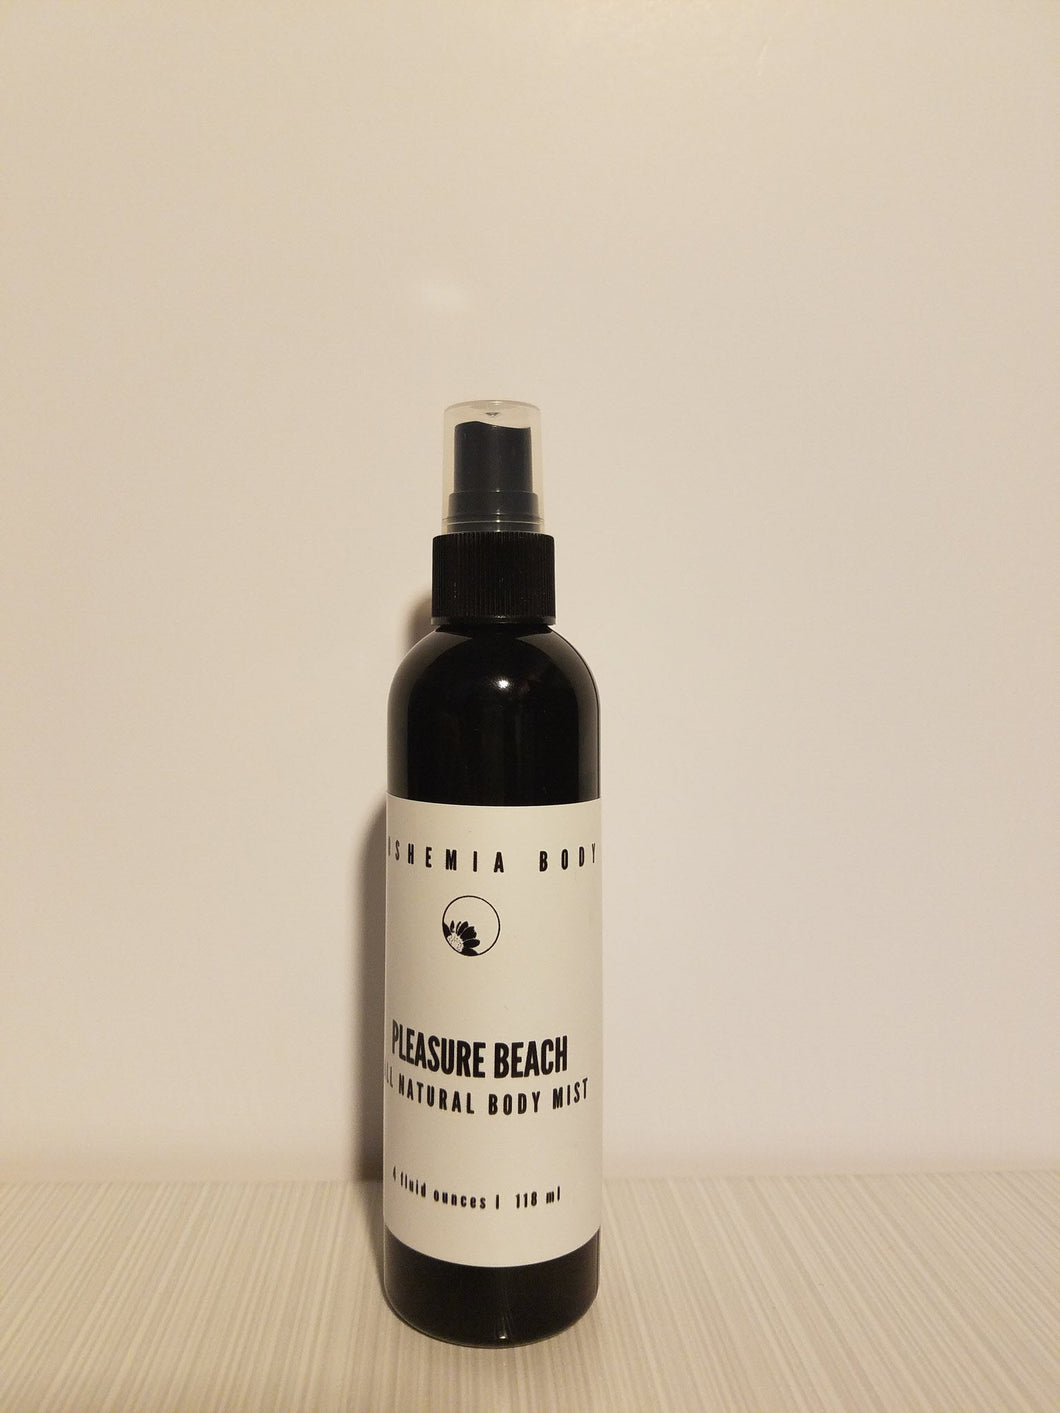 Pleasure Beach Body Mist